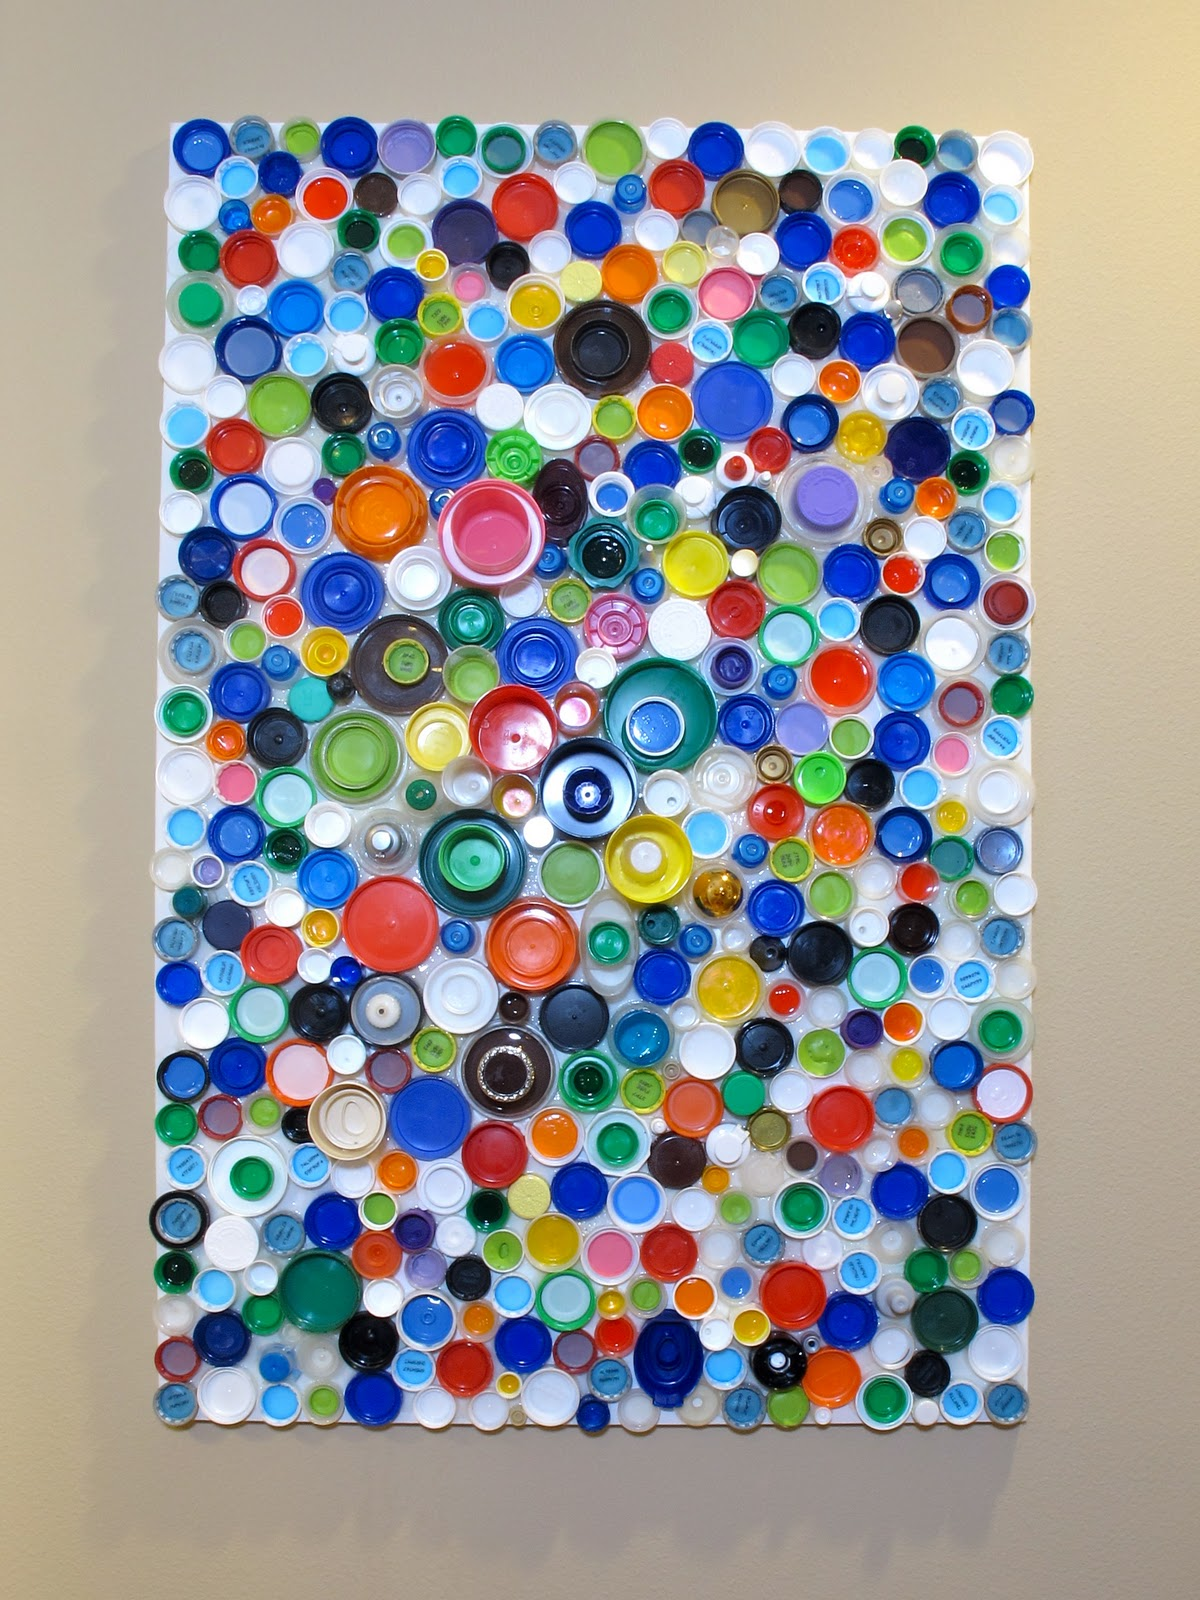 BluKatKraft: How to Make an Upcycled Plastic Bottle Cap Mosaic